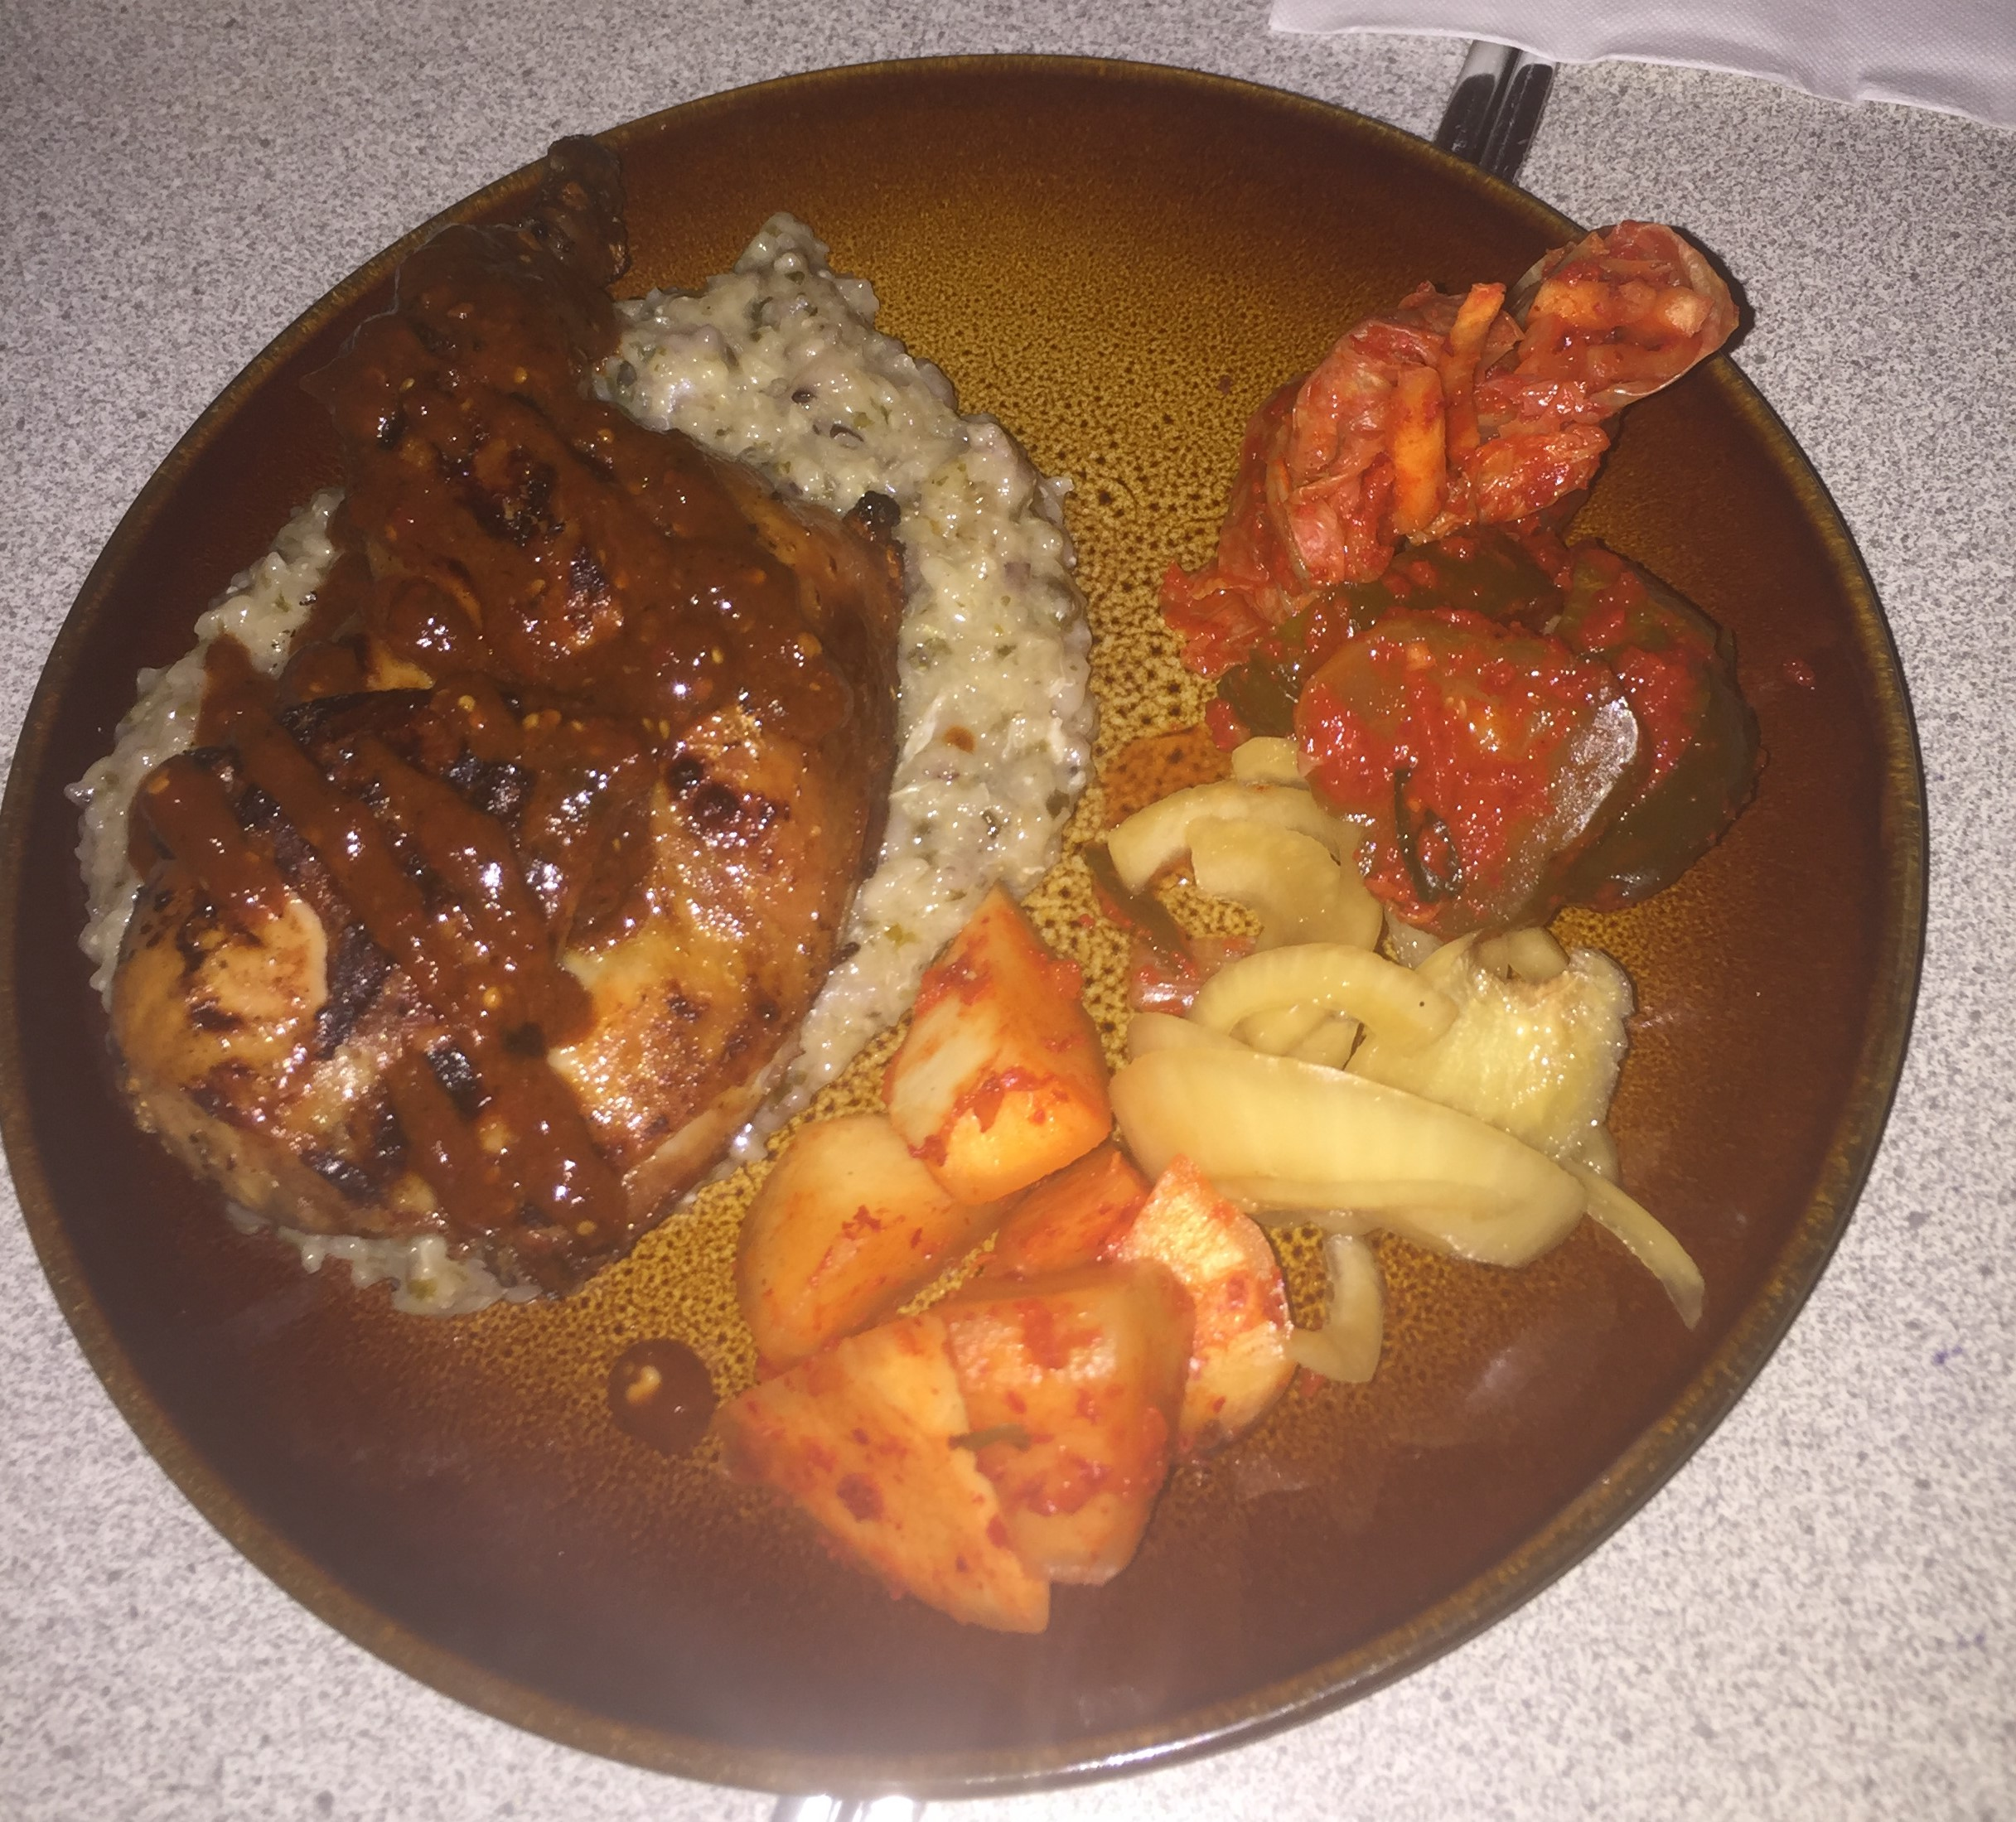 cornish_hen_&_rice (5)